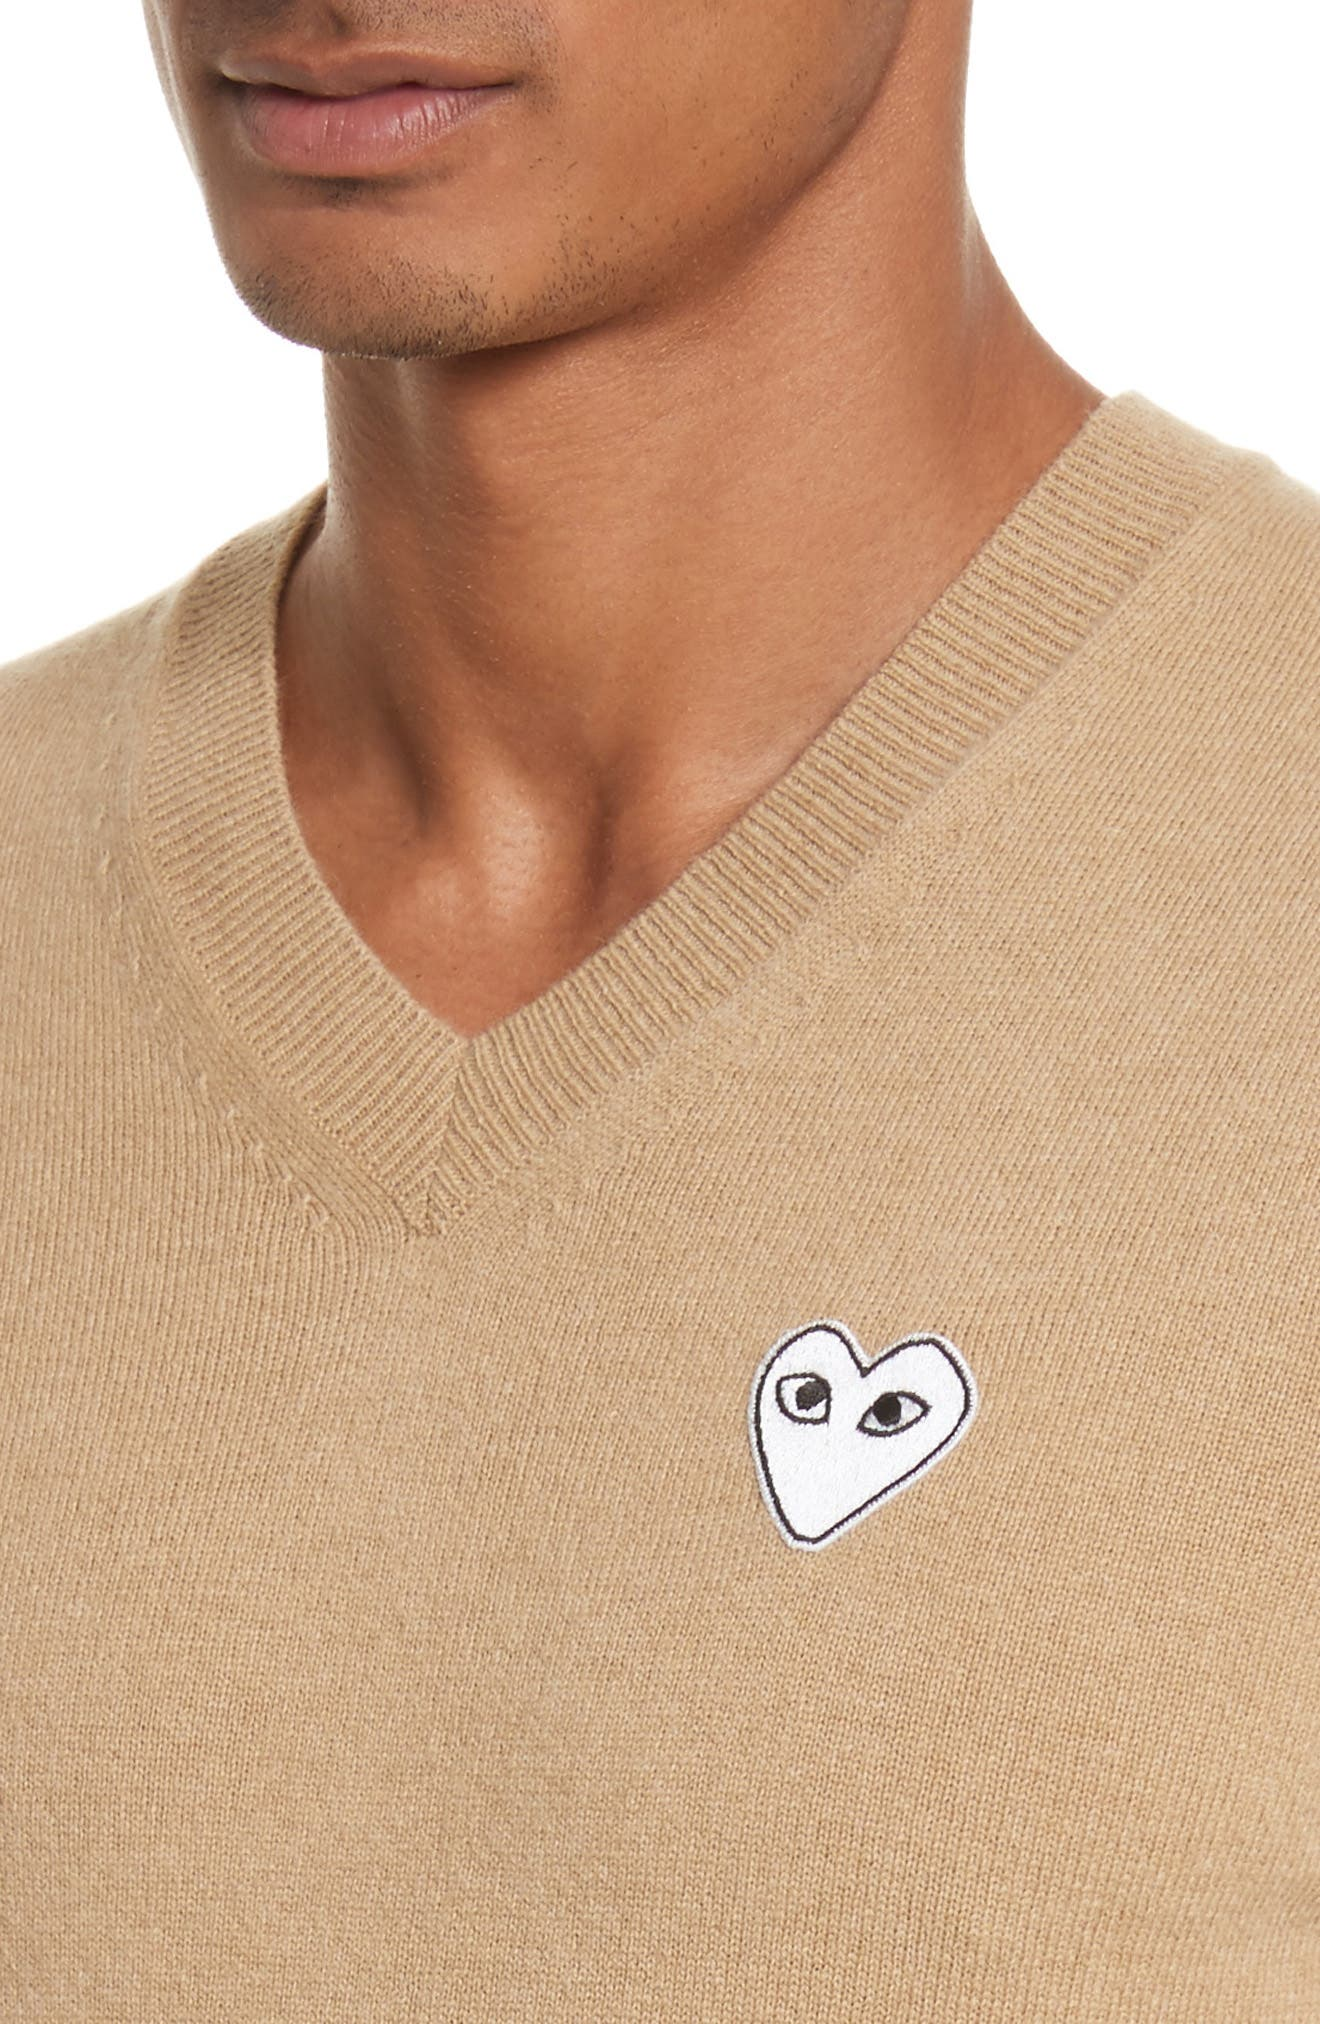 Comme des Garçons PLAY White Heart Wool V-Neck Sweater,                             Alternate thumbnail 4, color,                             Camel